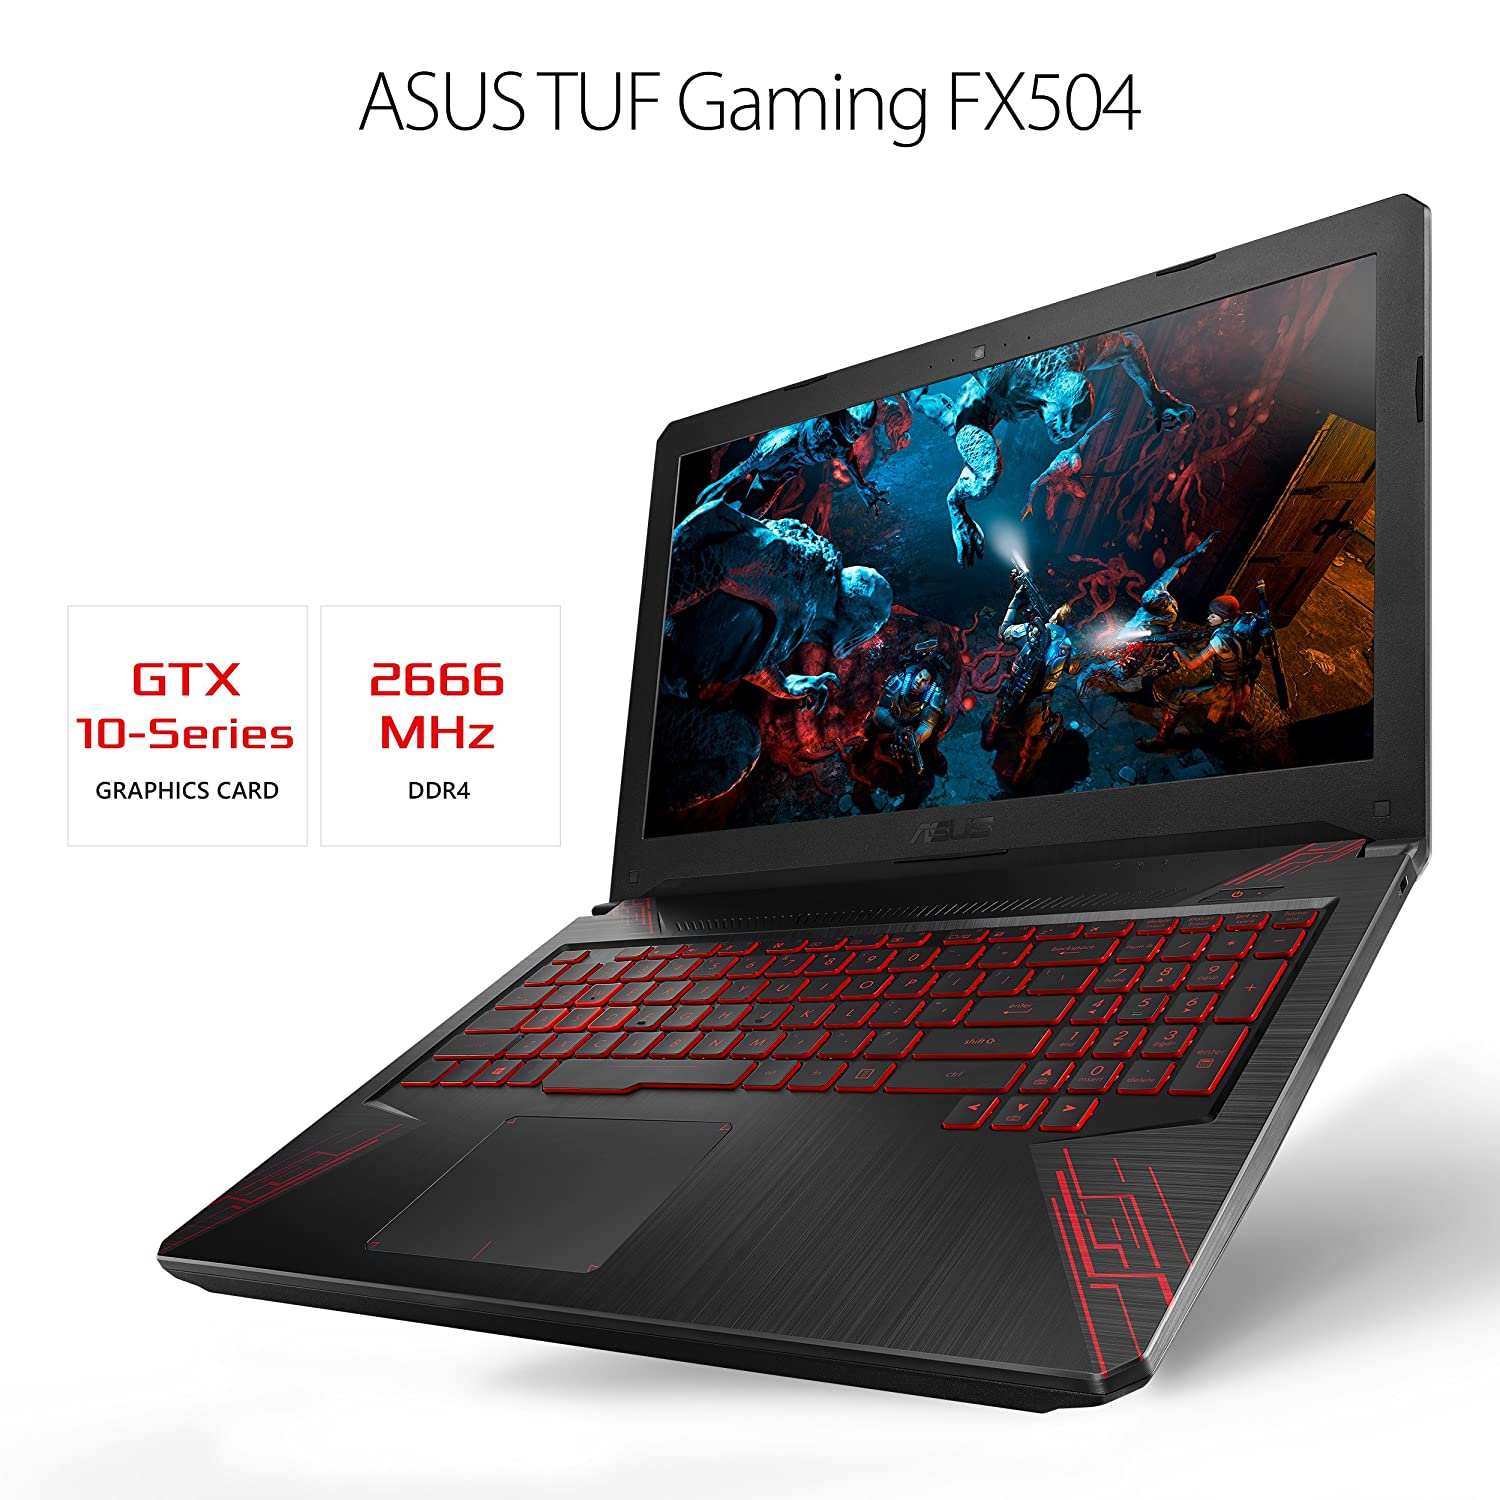 ASUS TUF FX504GD-ES51 15.6 inch Gaming Laptop